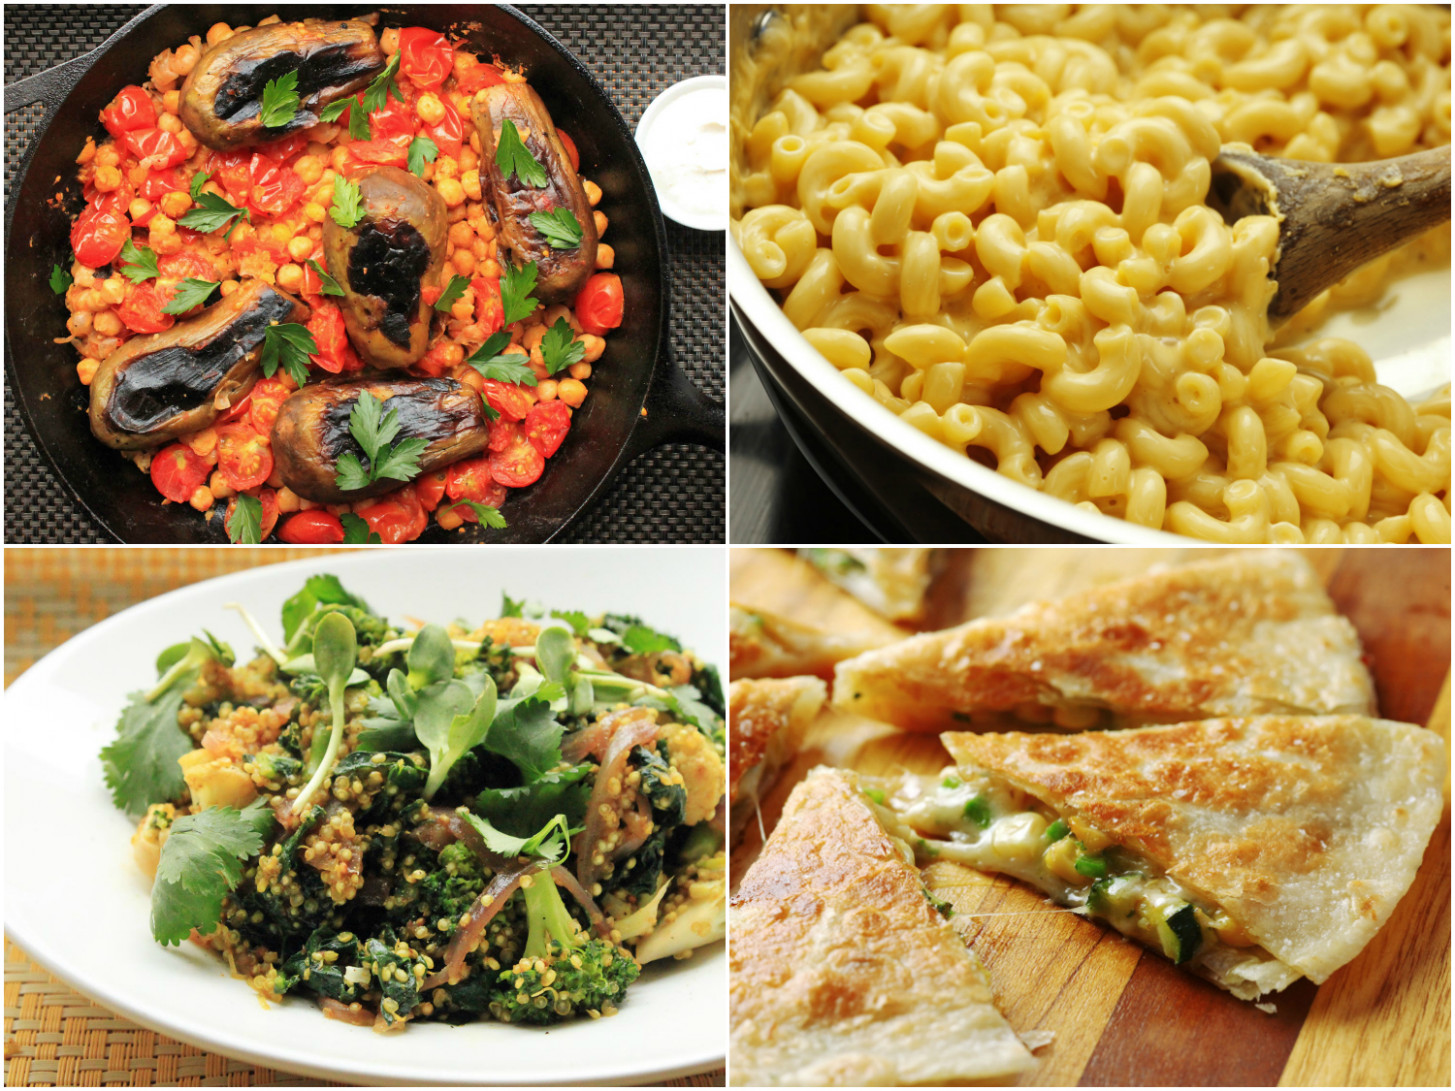 15 Easy One-Pot Vegetarian Dinners | Serious Eats - vegetarian food recipes